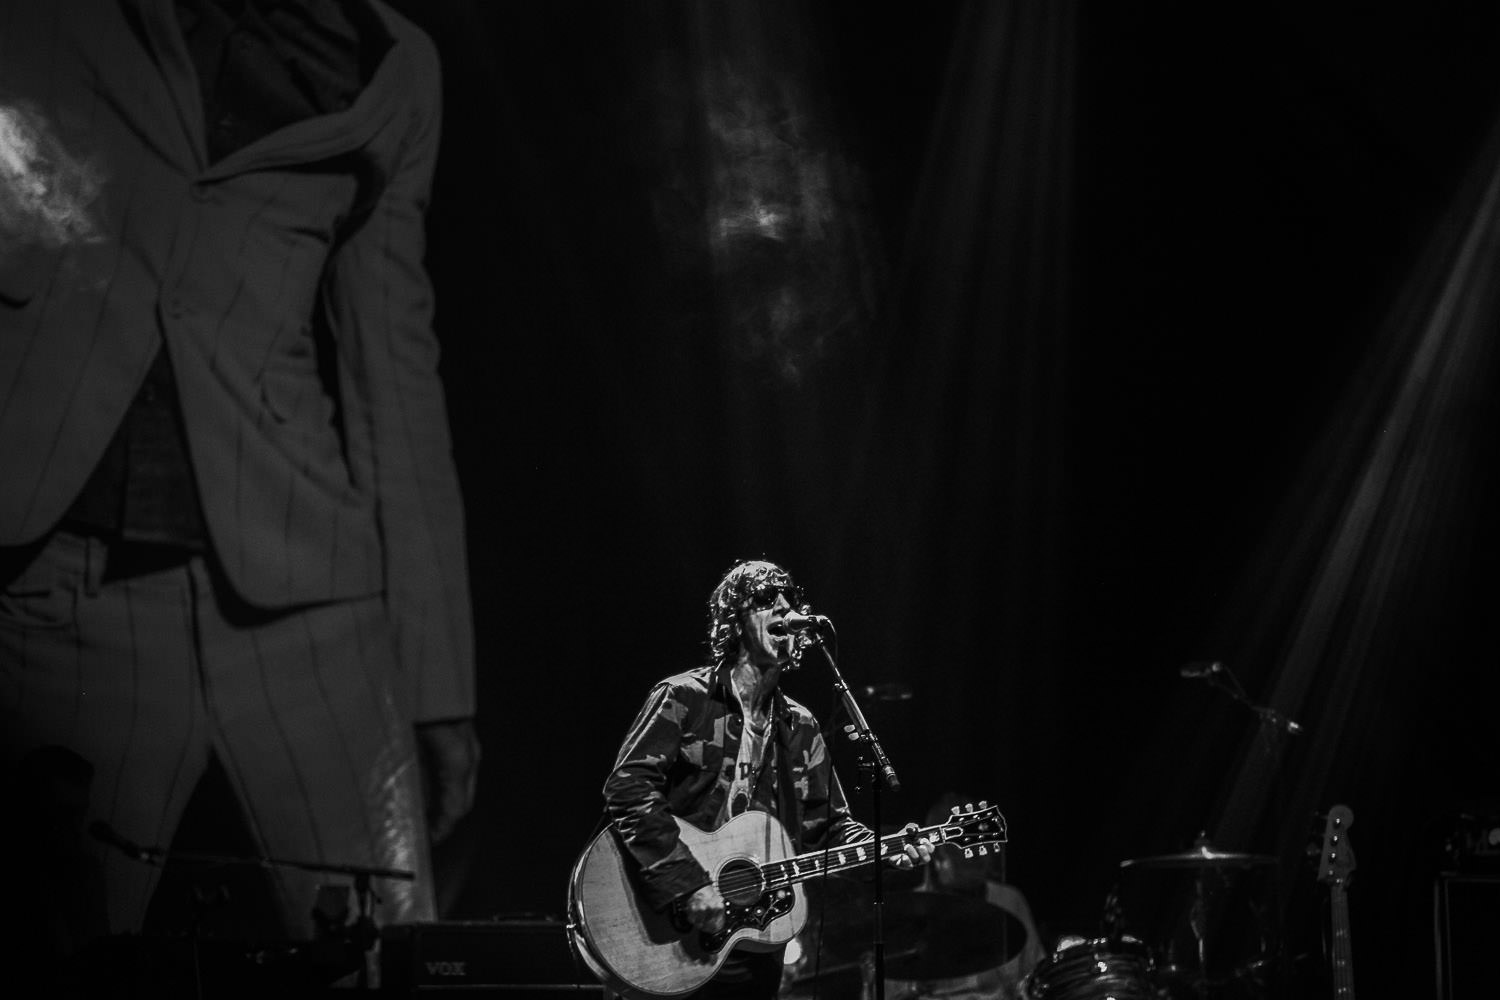 black and white photo of Richard Ashcroft singing on stage with guitar